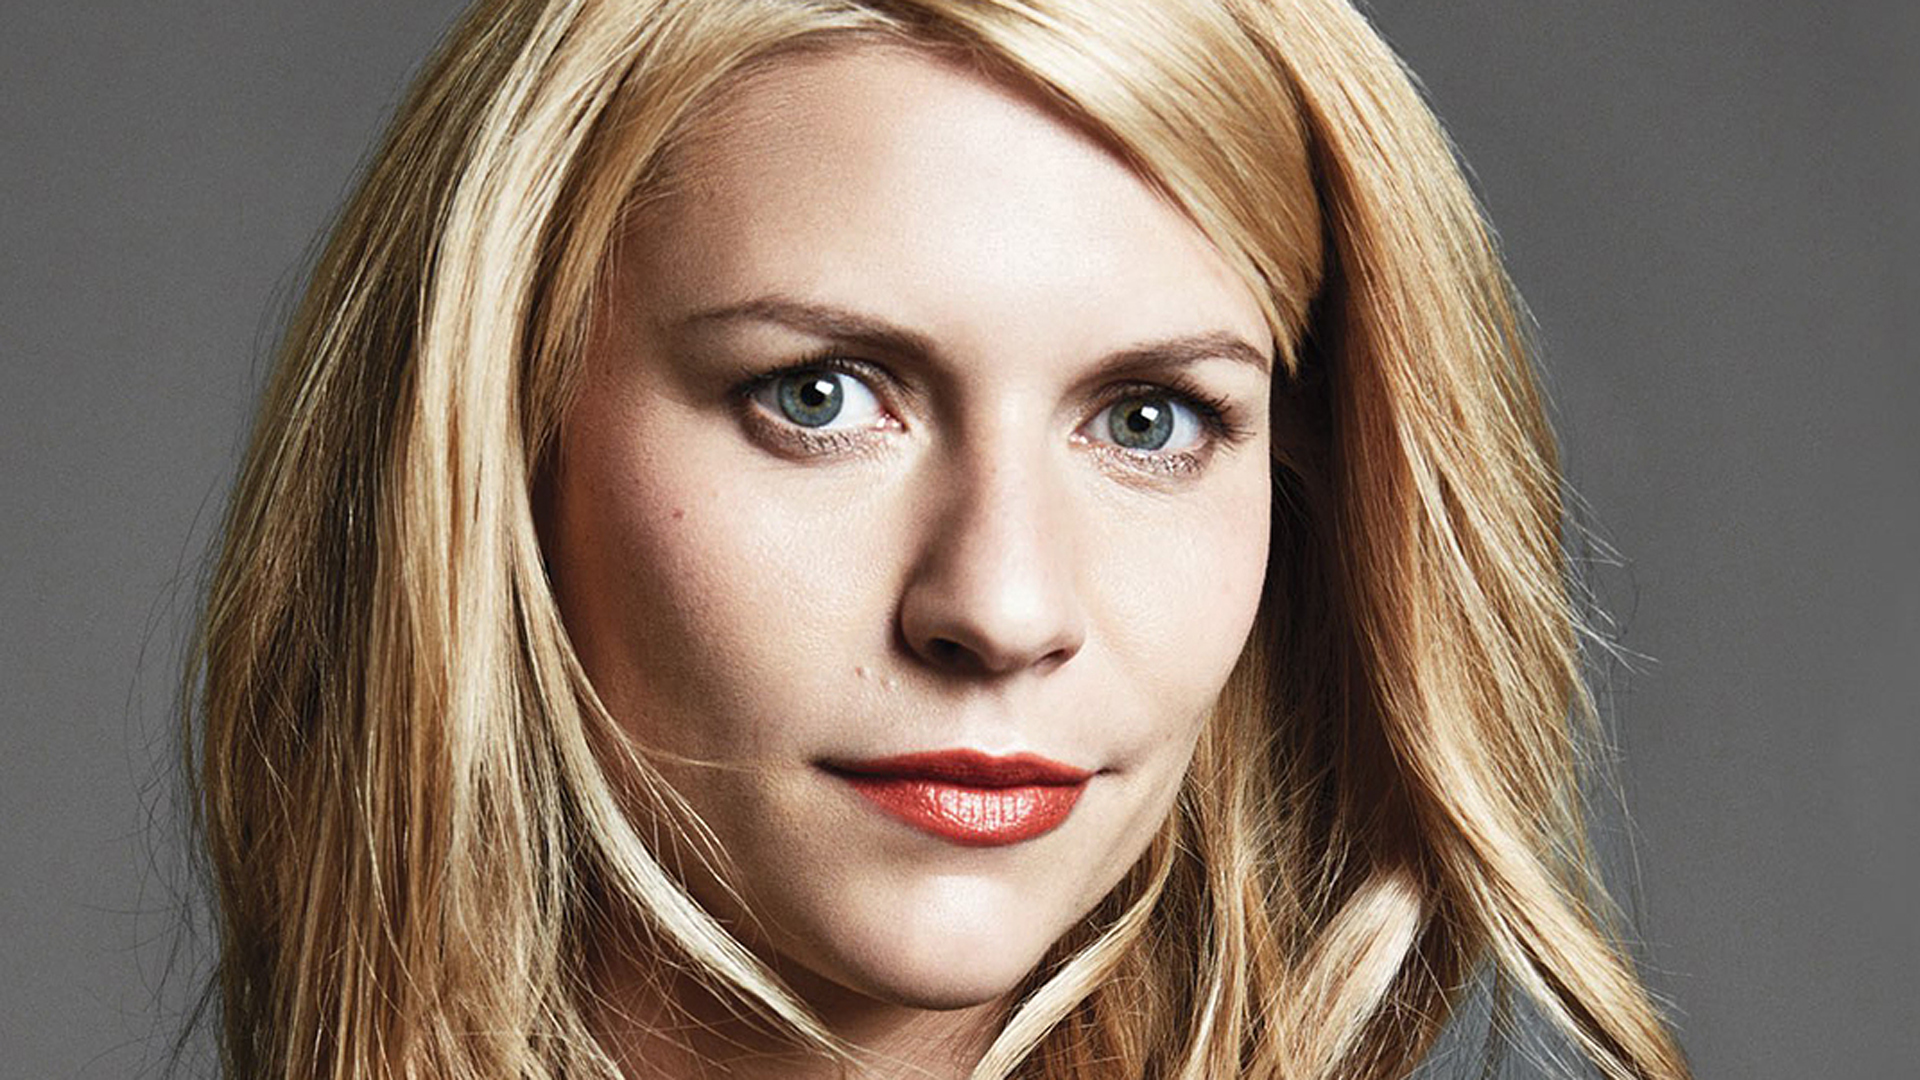 1920x1080 - Claire Danes Wallpapers 15